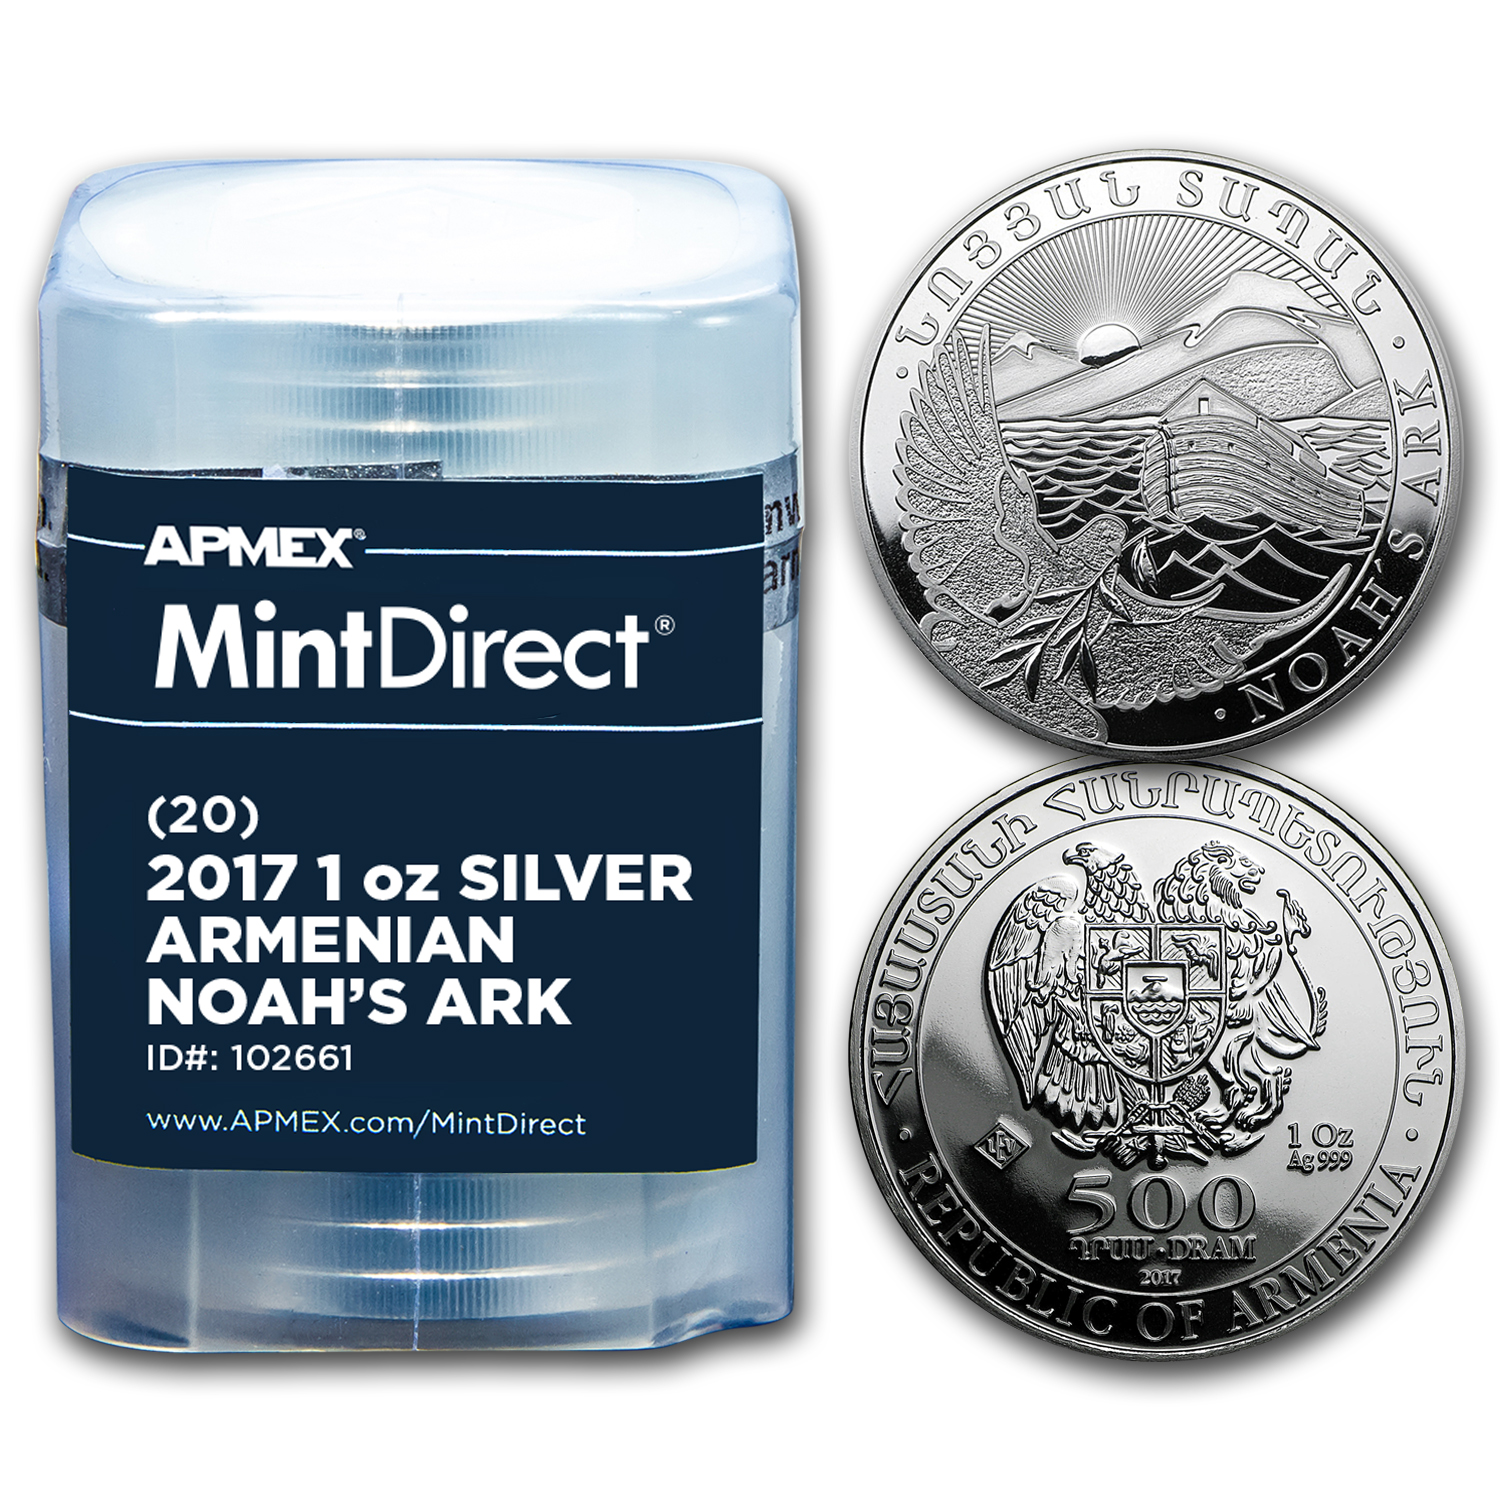 2017 Armenia 1 oz Silver Noah's Ark (20-Coin MintDirect® Tube)